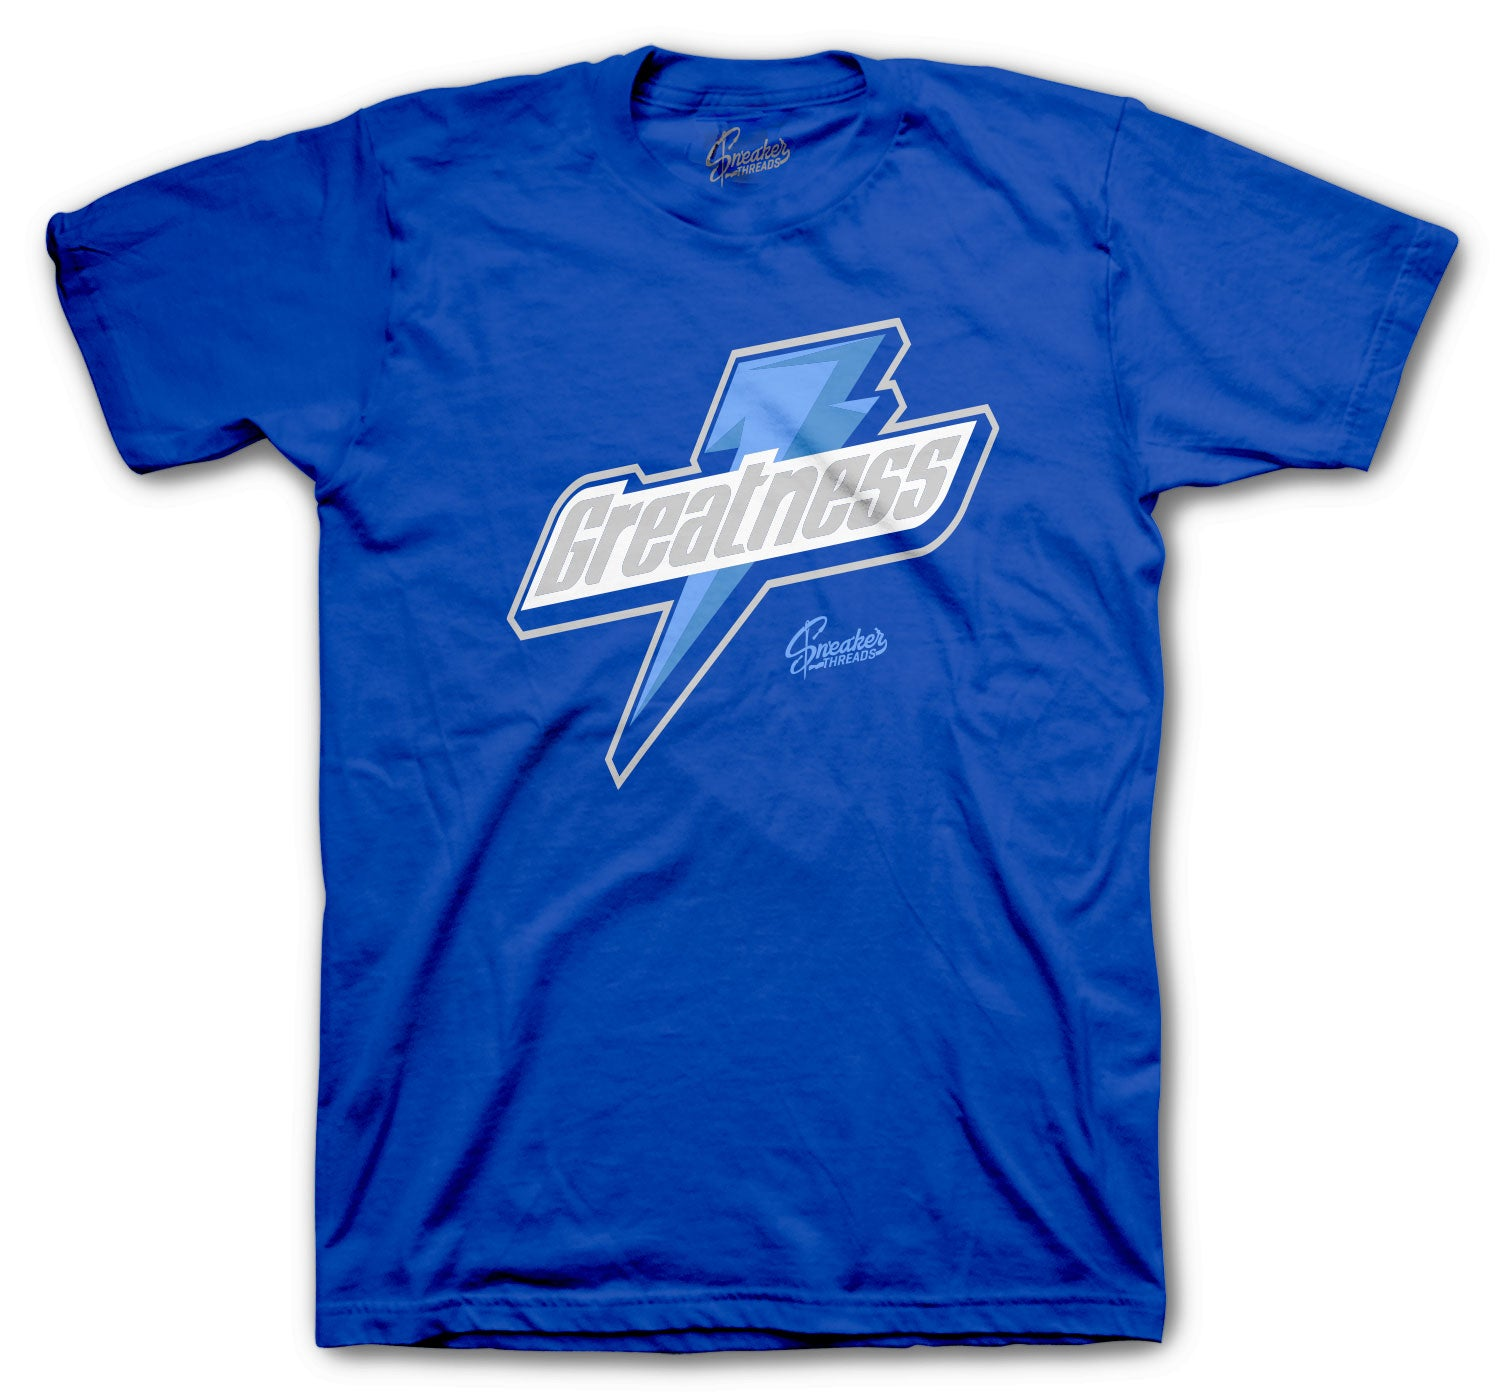 Jordan 1 Hyper Royal Shirt - Greatness - Royal